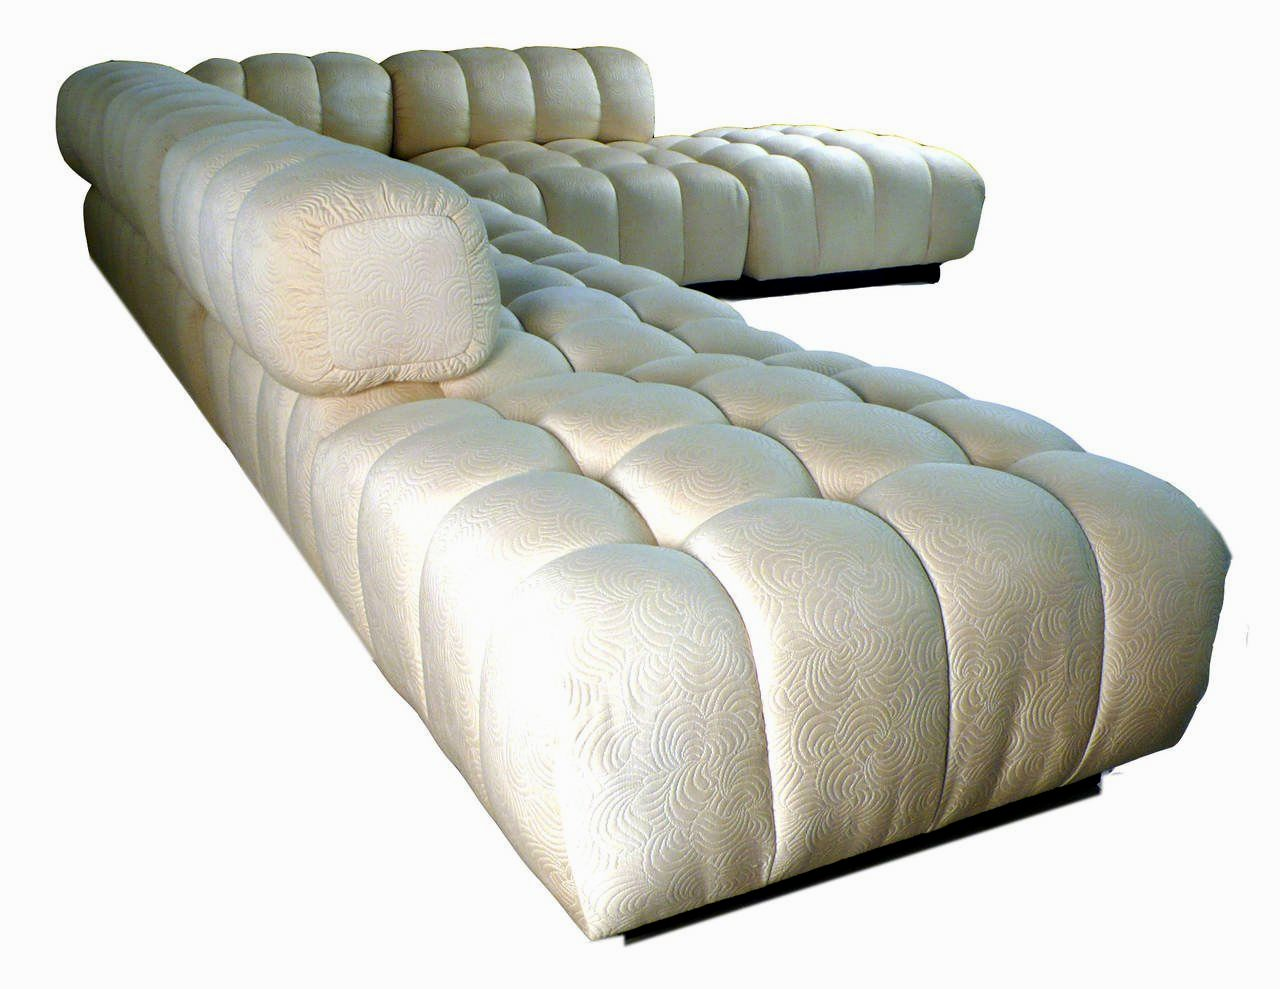 wonderful deep sectional sofa design-Amazing Deep Sectional sofa Photo